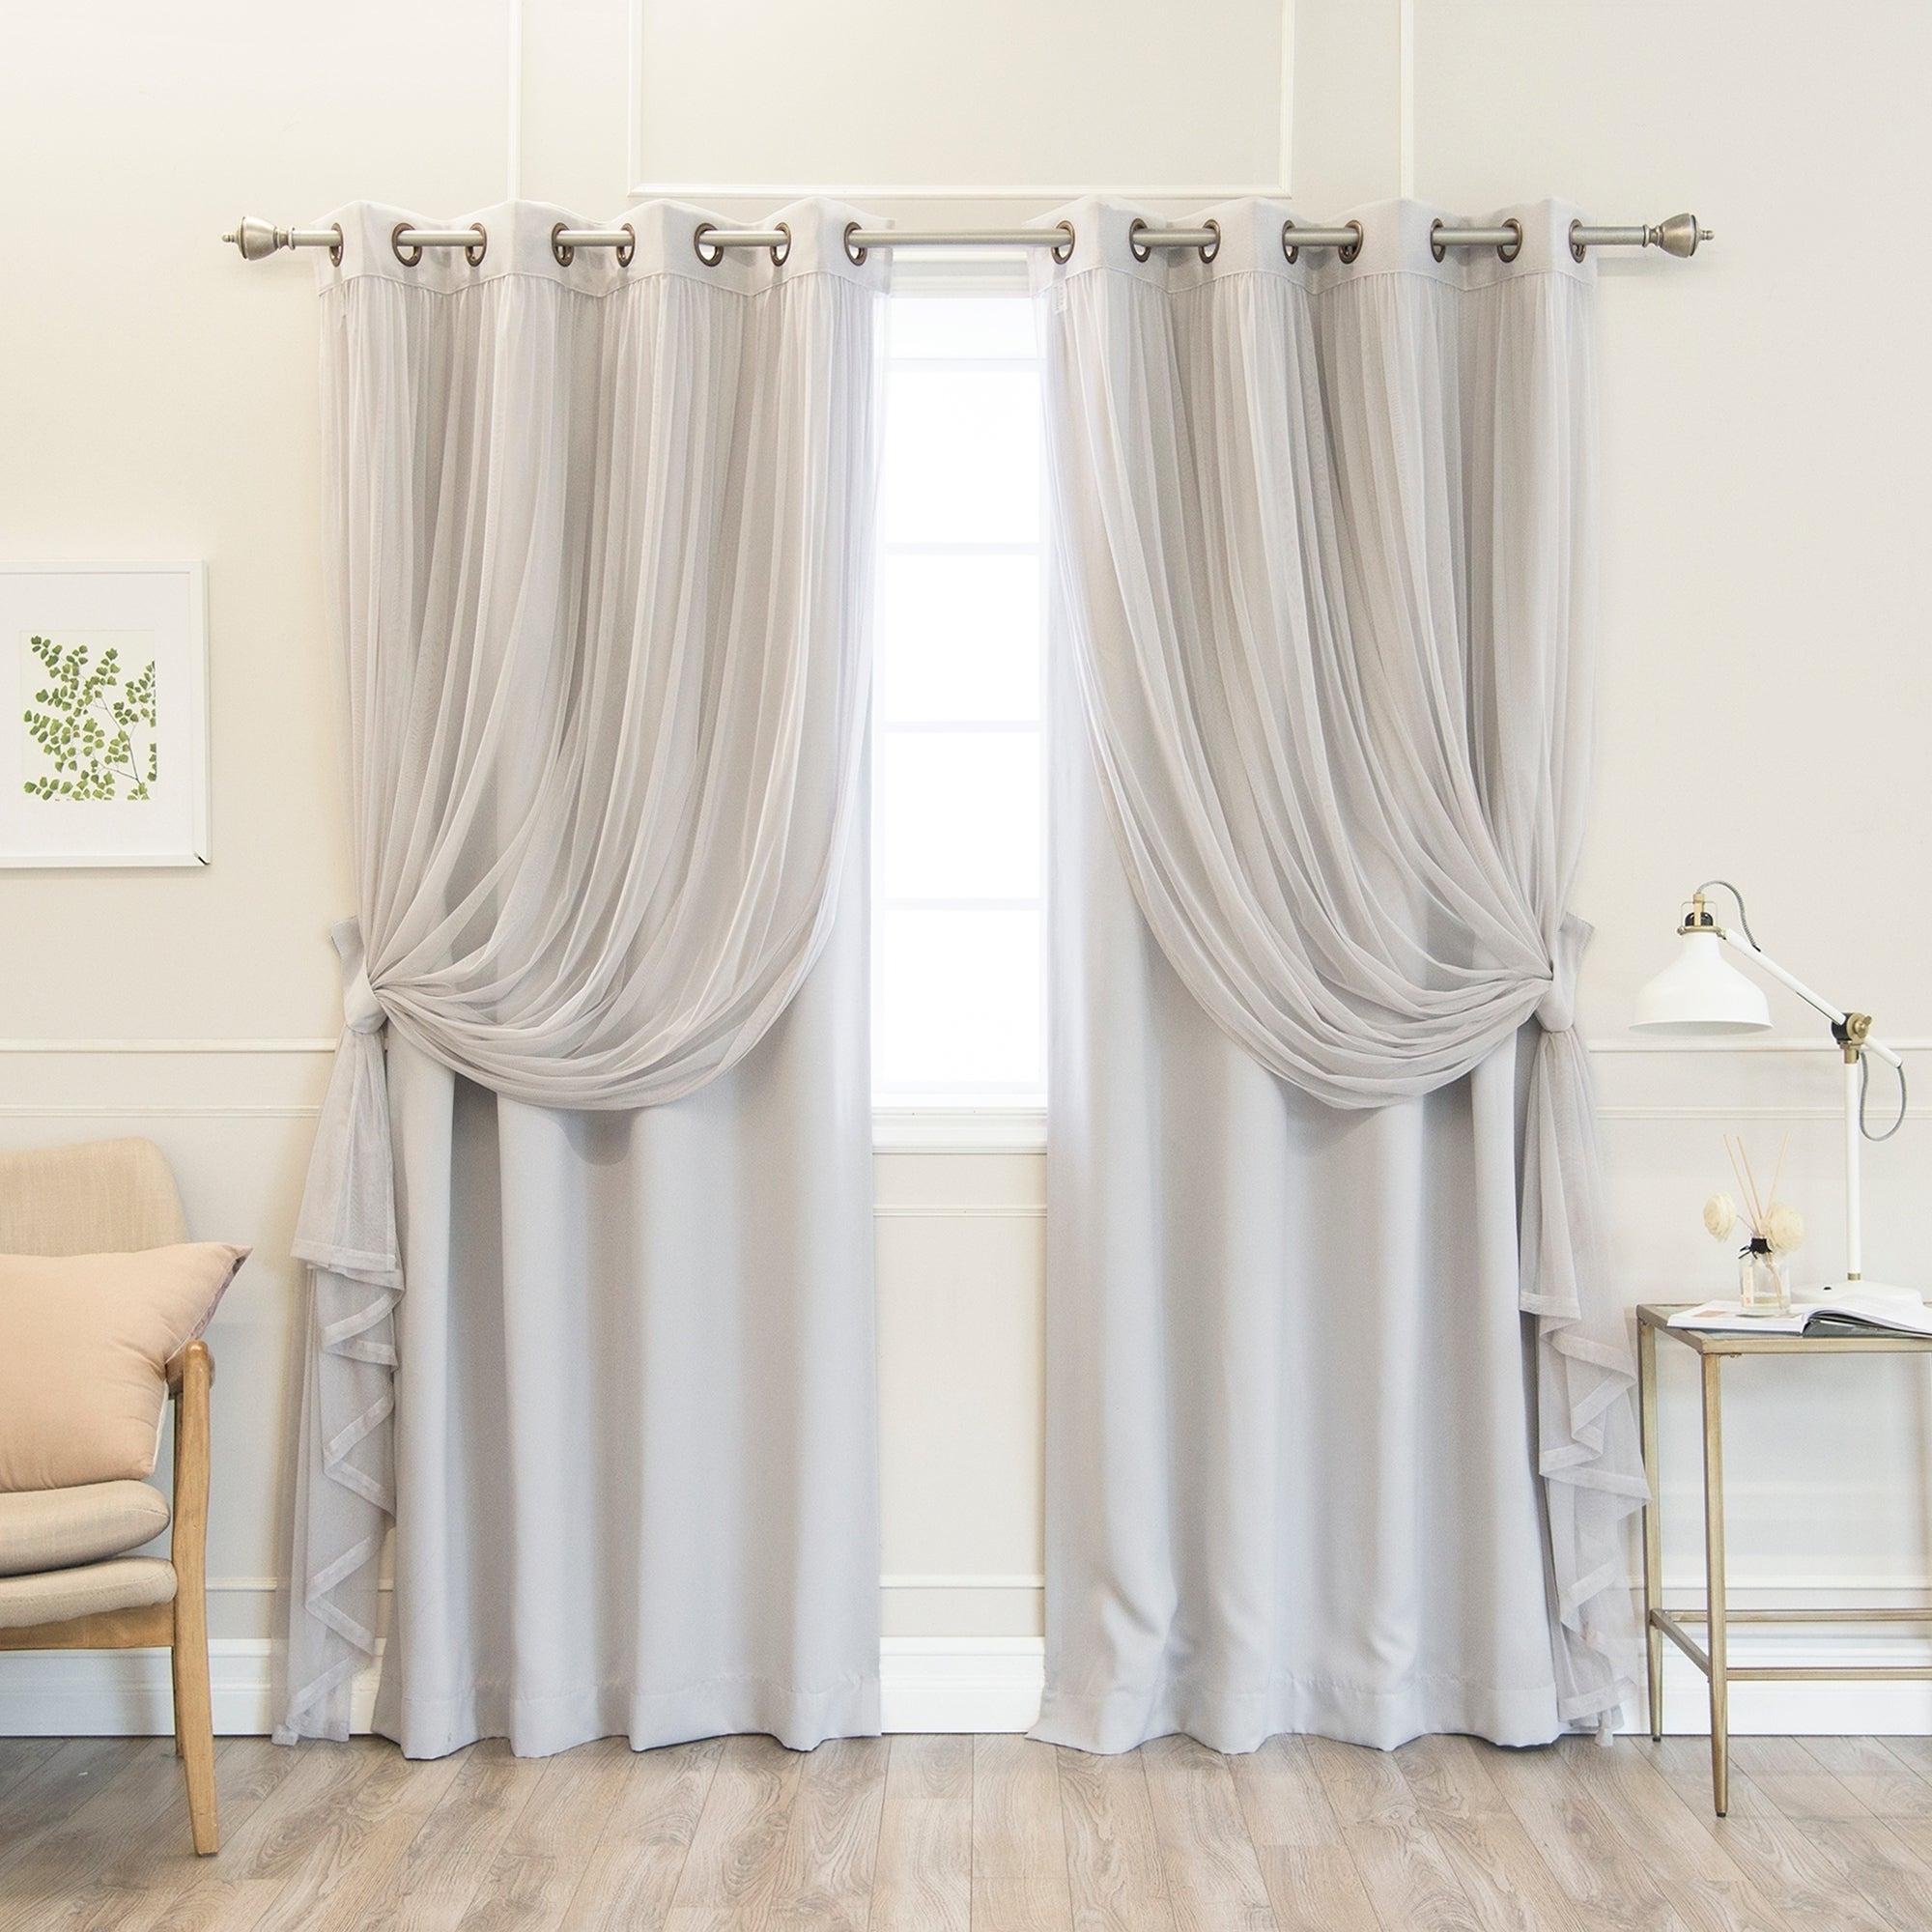 Mix And Match Blackout Tulle Lace Sheer Curtain Panel Sets Within Newest Aurora Home Mix & Match Pastel Tulle Blackout 4 Piece Curtain Panel Set –  N/a (Gallery 13 of 20)